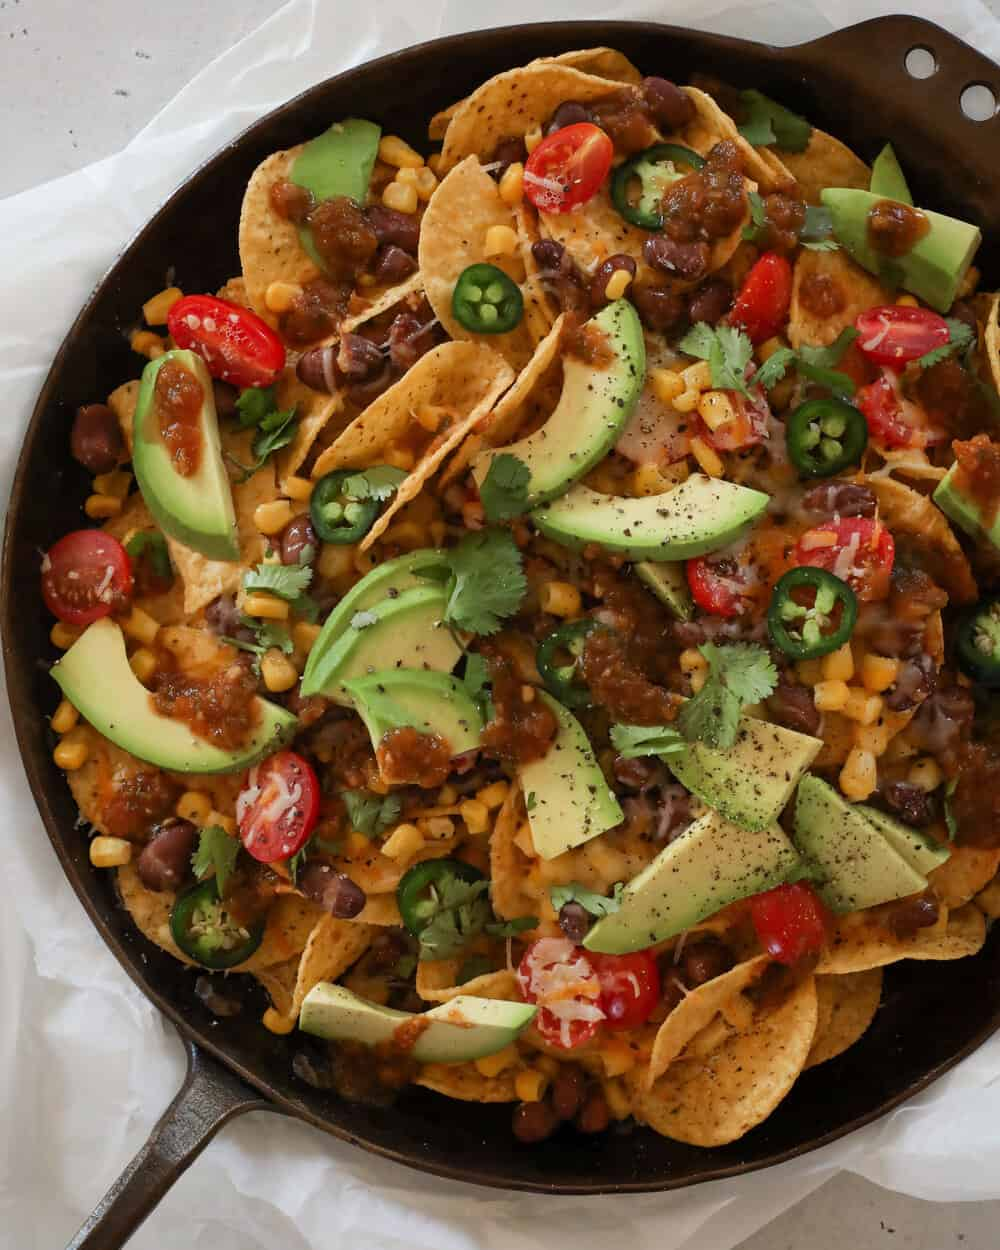 SKILLET NACHOS - INGREDIENTS1 9-12oz bag tortilla chips of choice (I usually make this with @sietefoods chips)1/2 can pinto beans, drained and rinsed1/2 can corn, drained and rinsed3/4-1 cup vegan shredded Mexican cheese1 avocado, sliced1/2 cup salsa1/2 cup vegan queso (I used @eatzubi)Sliced jalapeño pepper, chopped cilantro, and cracked pepper (optional